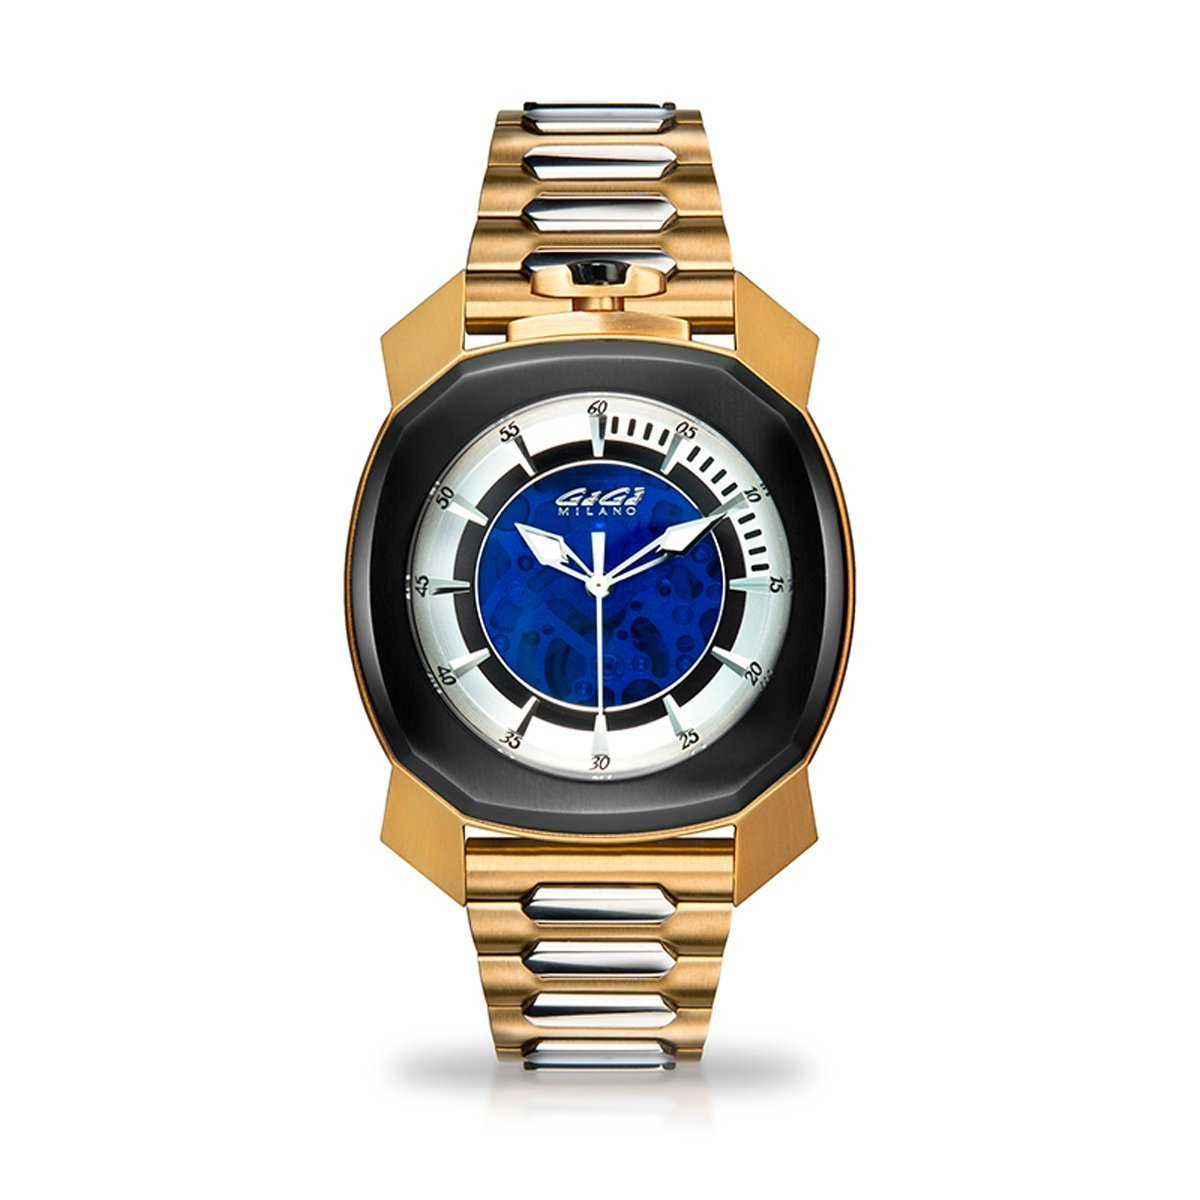 Gaga Milano Frame_One Skeleton Gold - Watches & Crystals